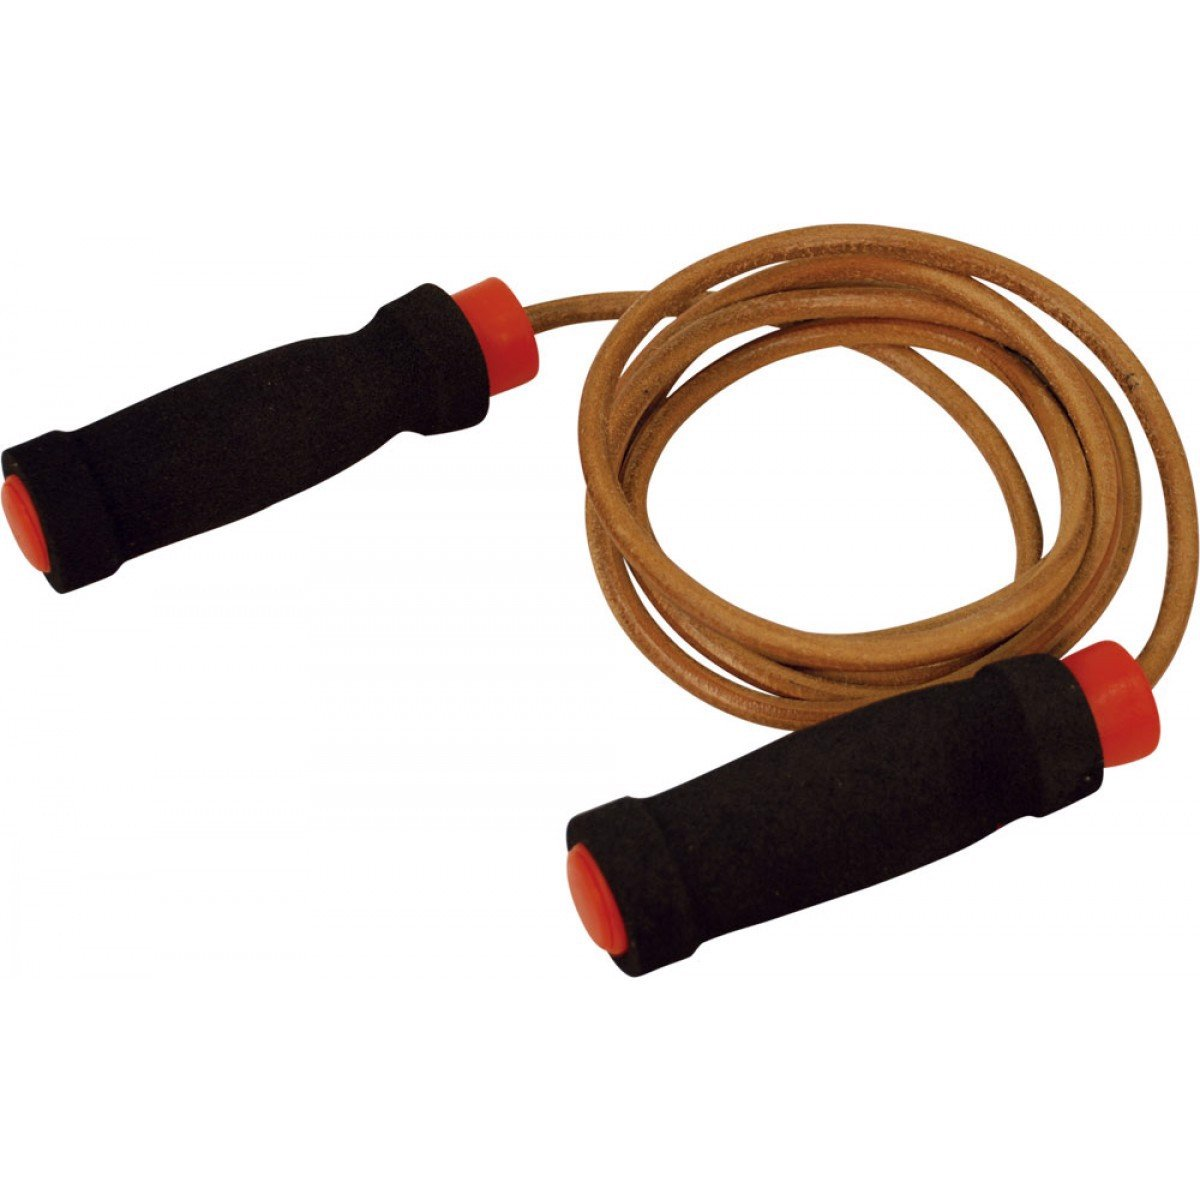 Dây nhảy thể lực TITLE Classic Leather Jump Rope